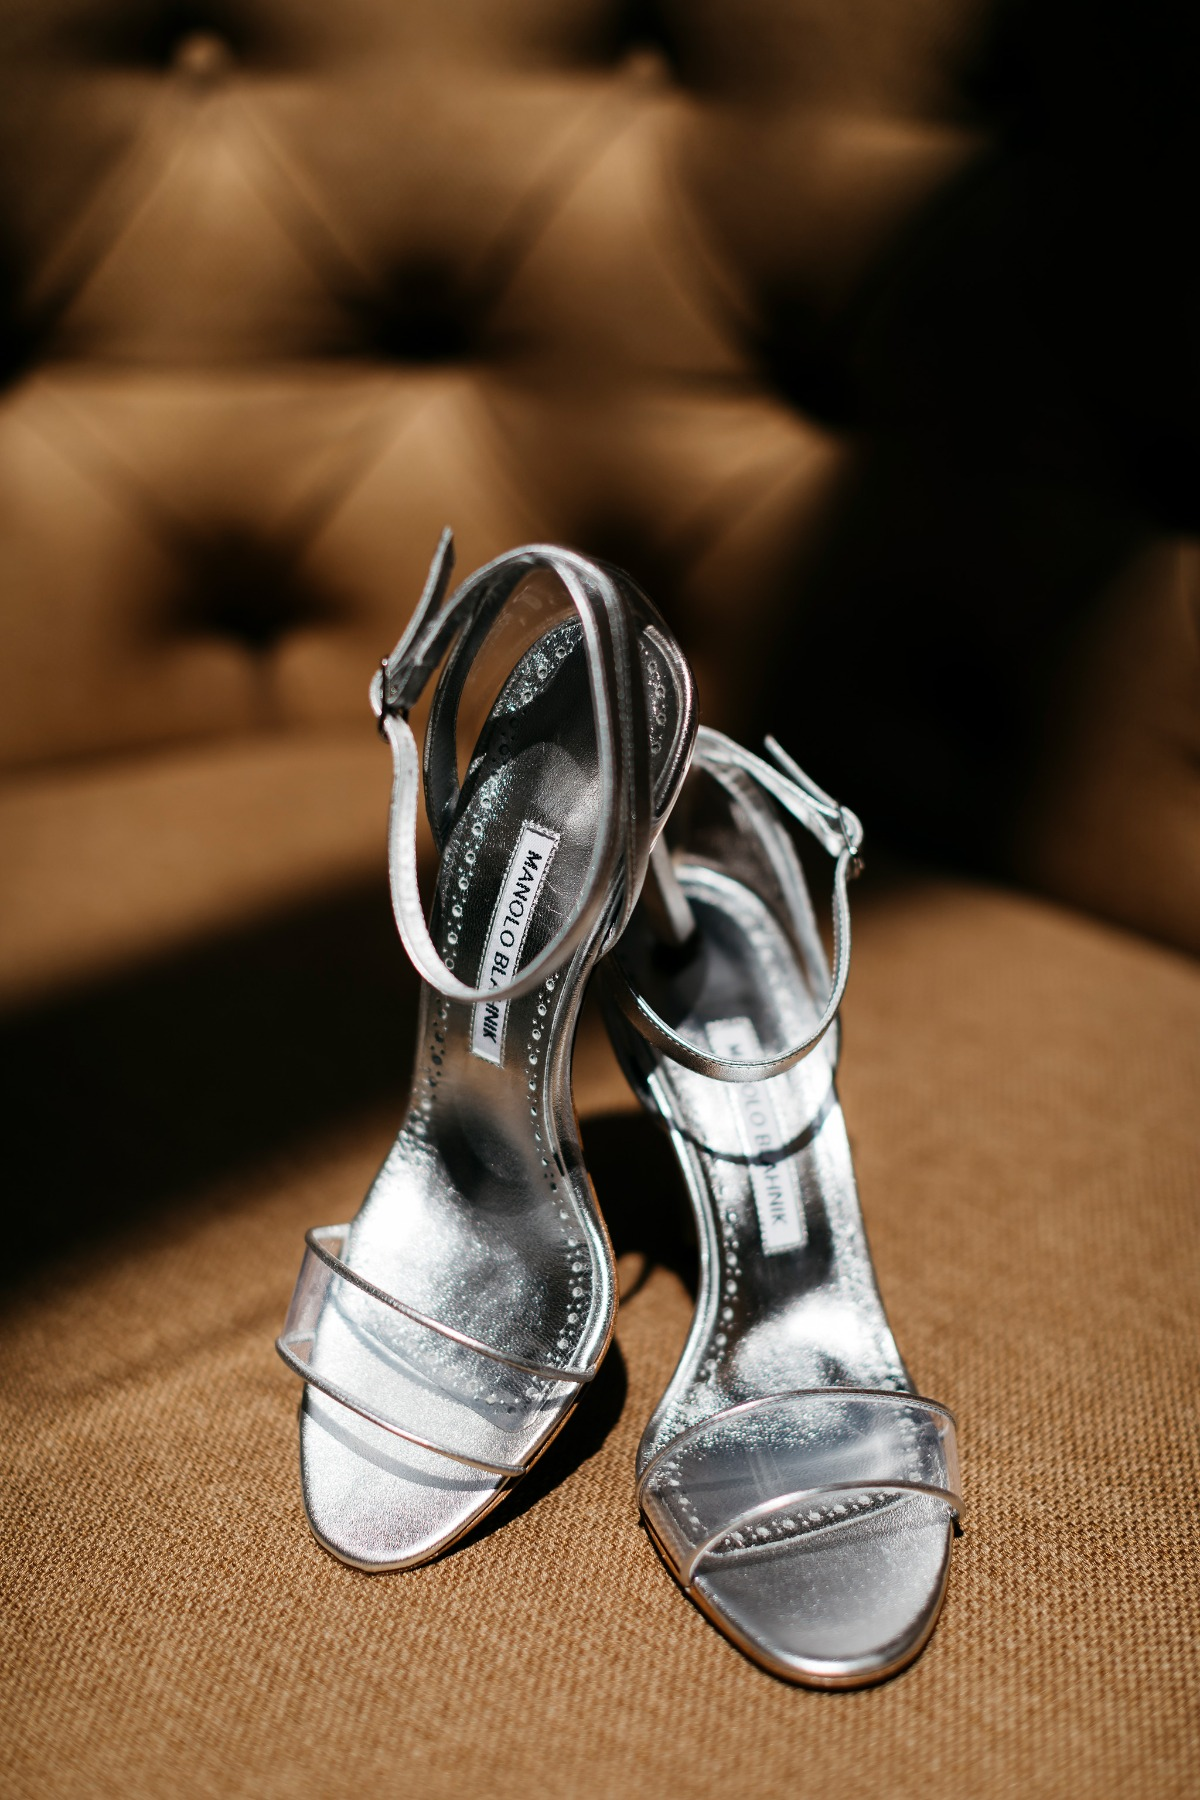 Manolo Blahnik heels for the bride